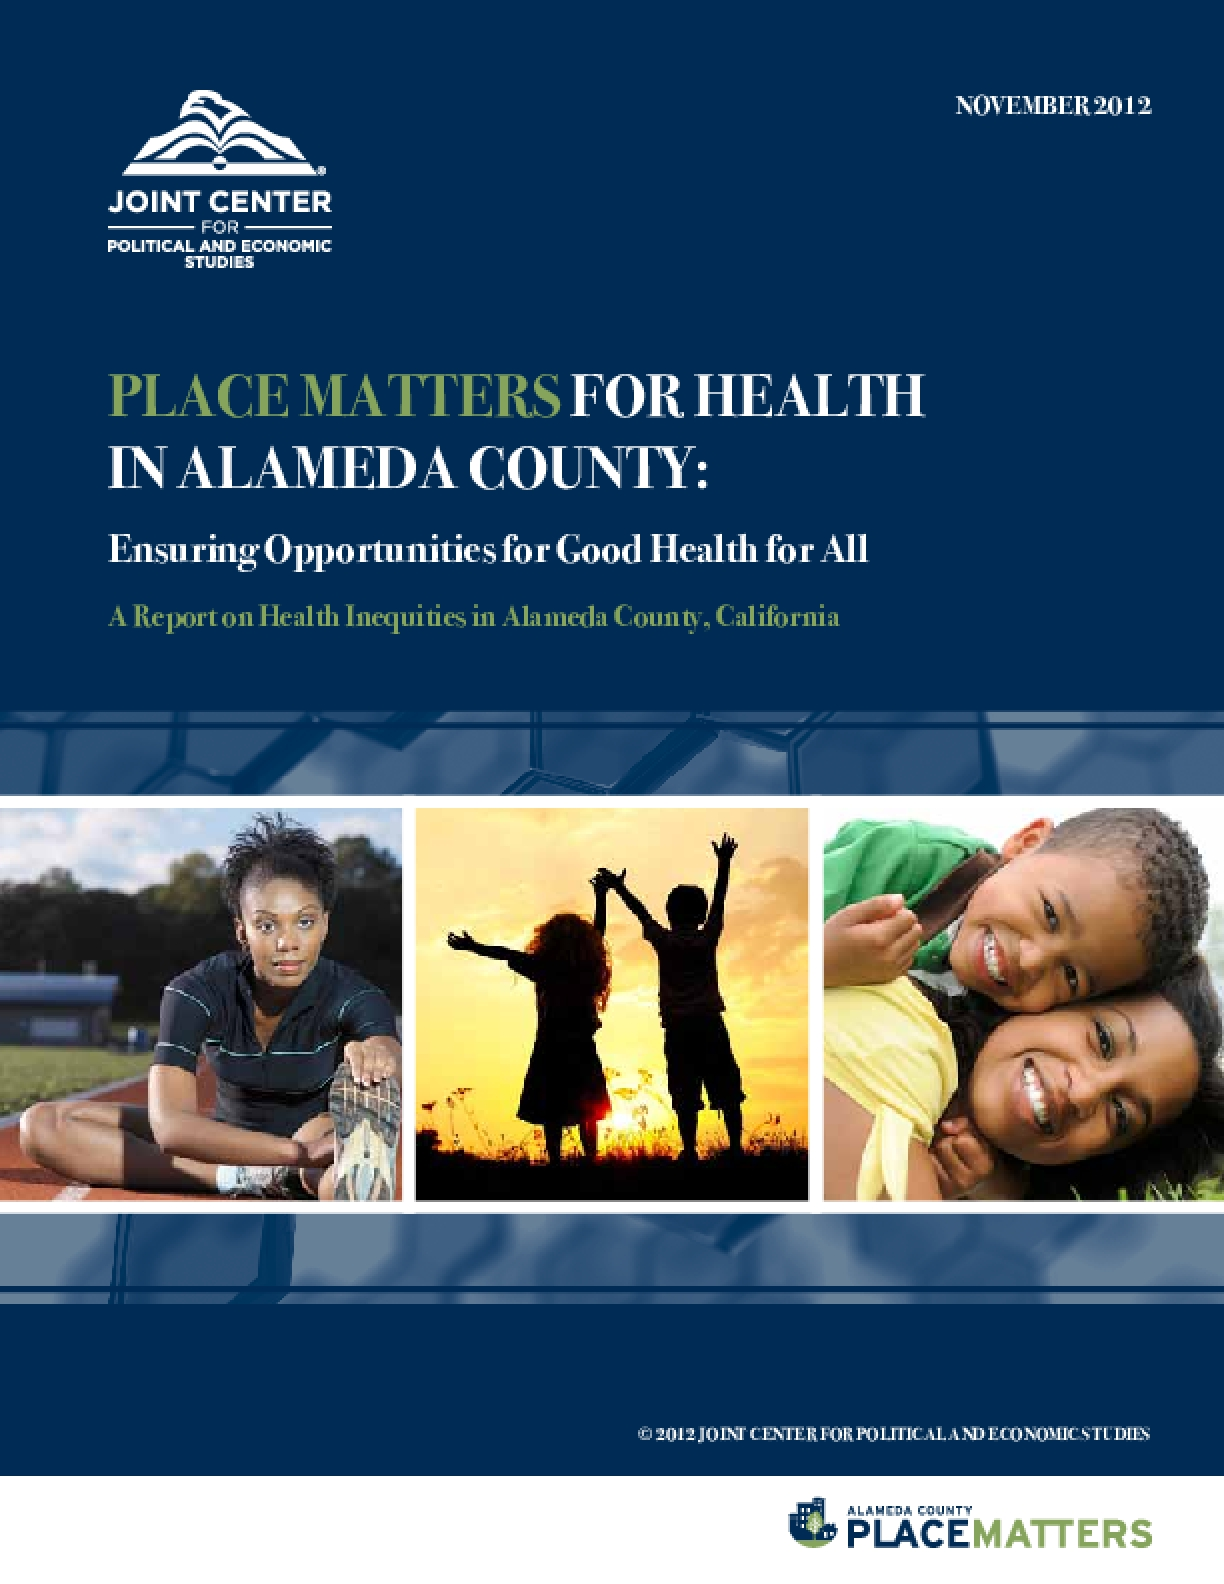 Place Matters for Health in Alameda County: Ensuring Opportunities for Good Health for All, A Report on Health Inequities in Alameda County, California